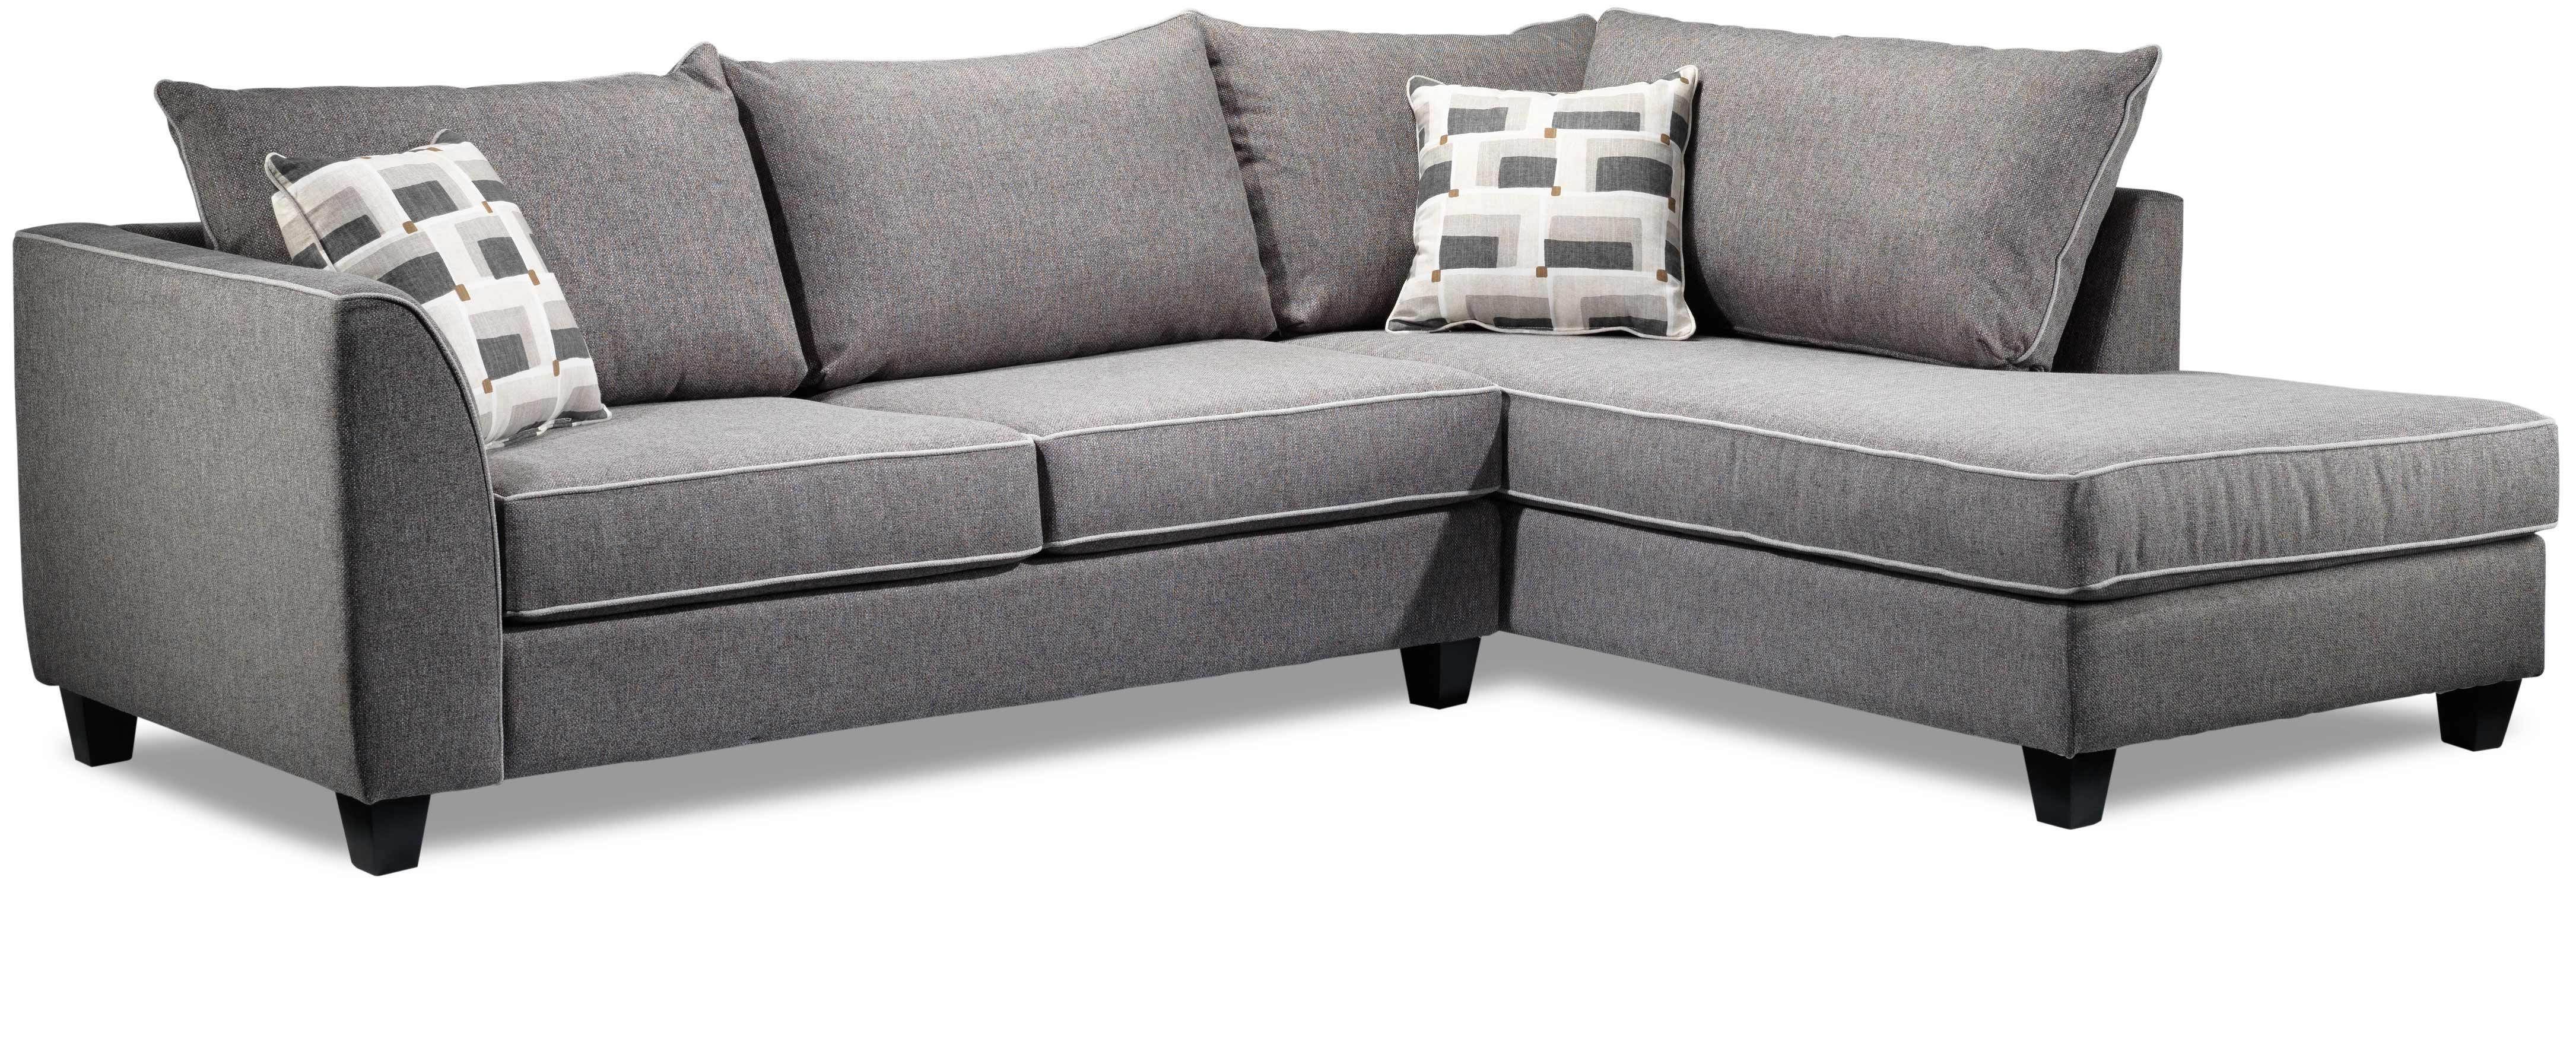 Pleasing Finnerty 2 Piece Sectional With Right Facing Chaise Silver Inzonedesignstudio Interior Chair Design Inzonedesignstudiocom